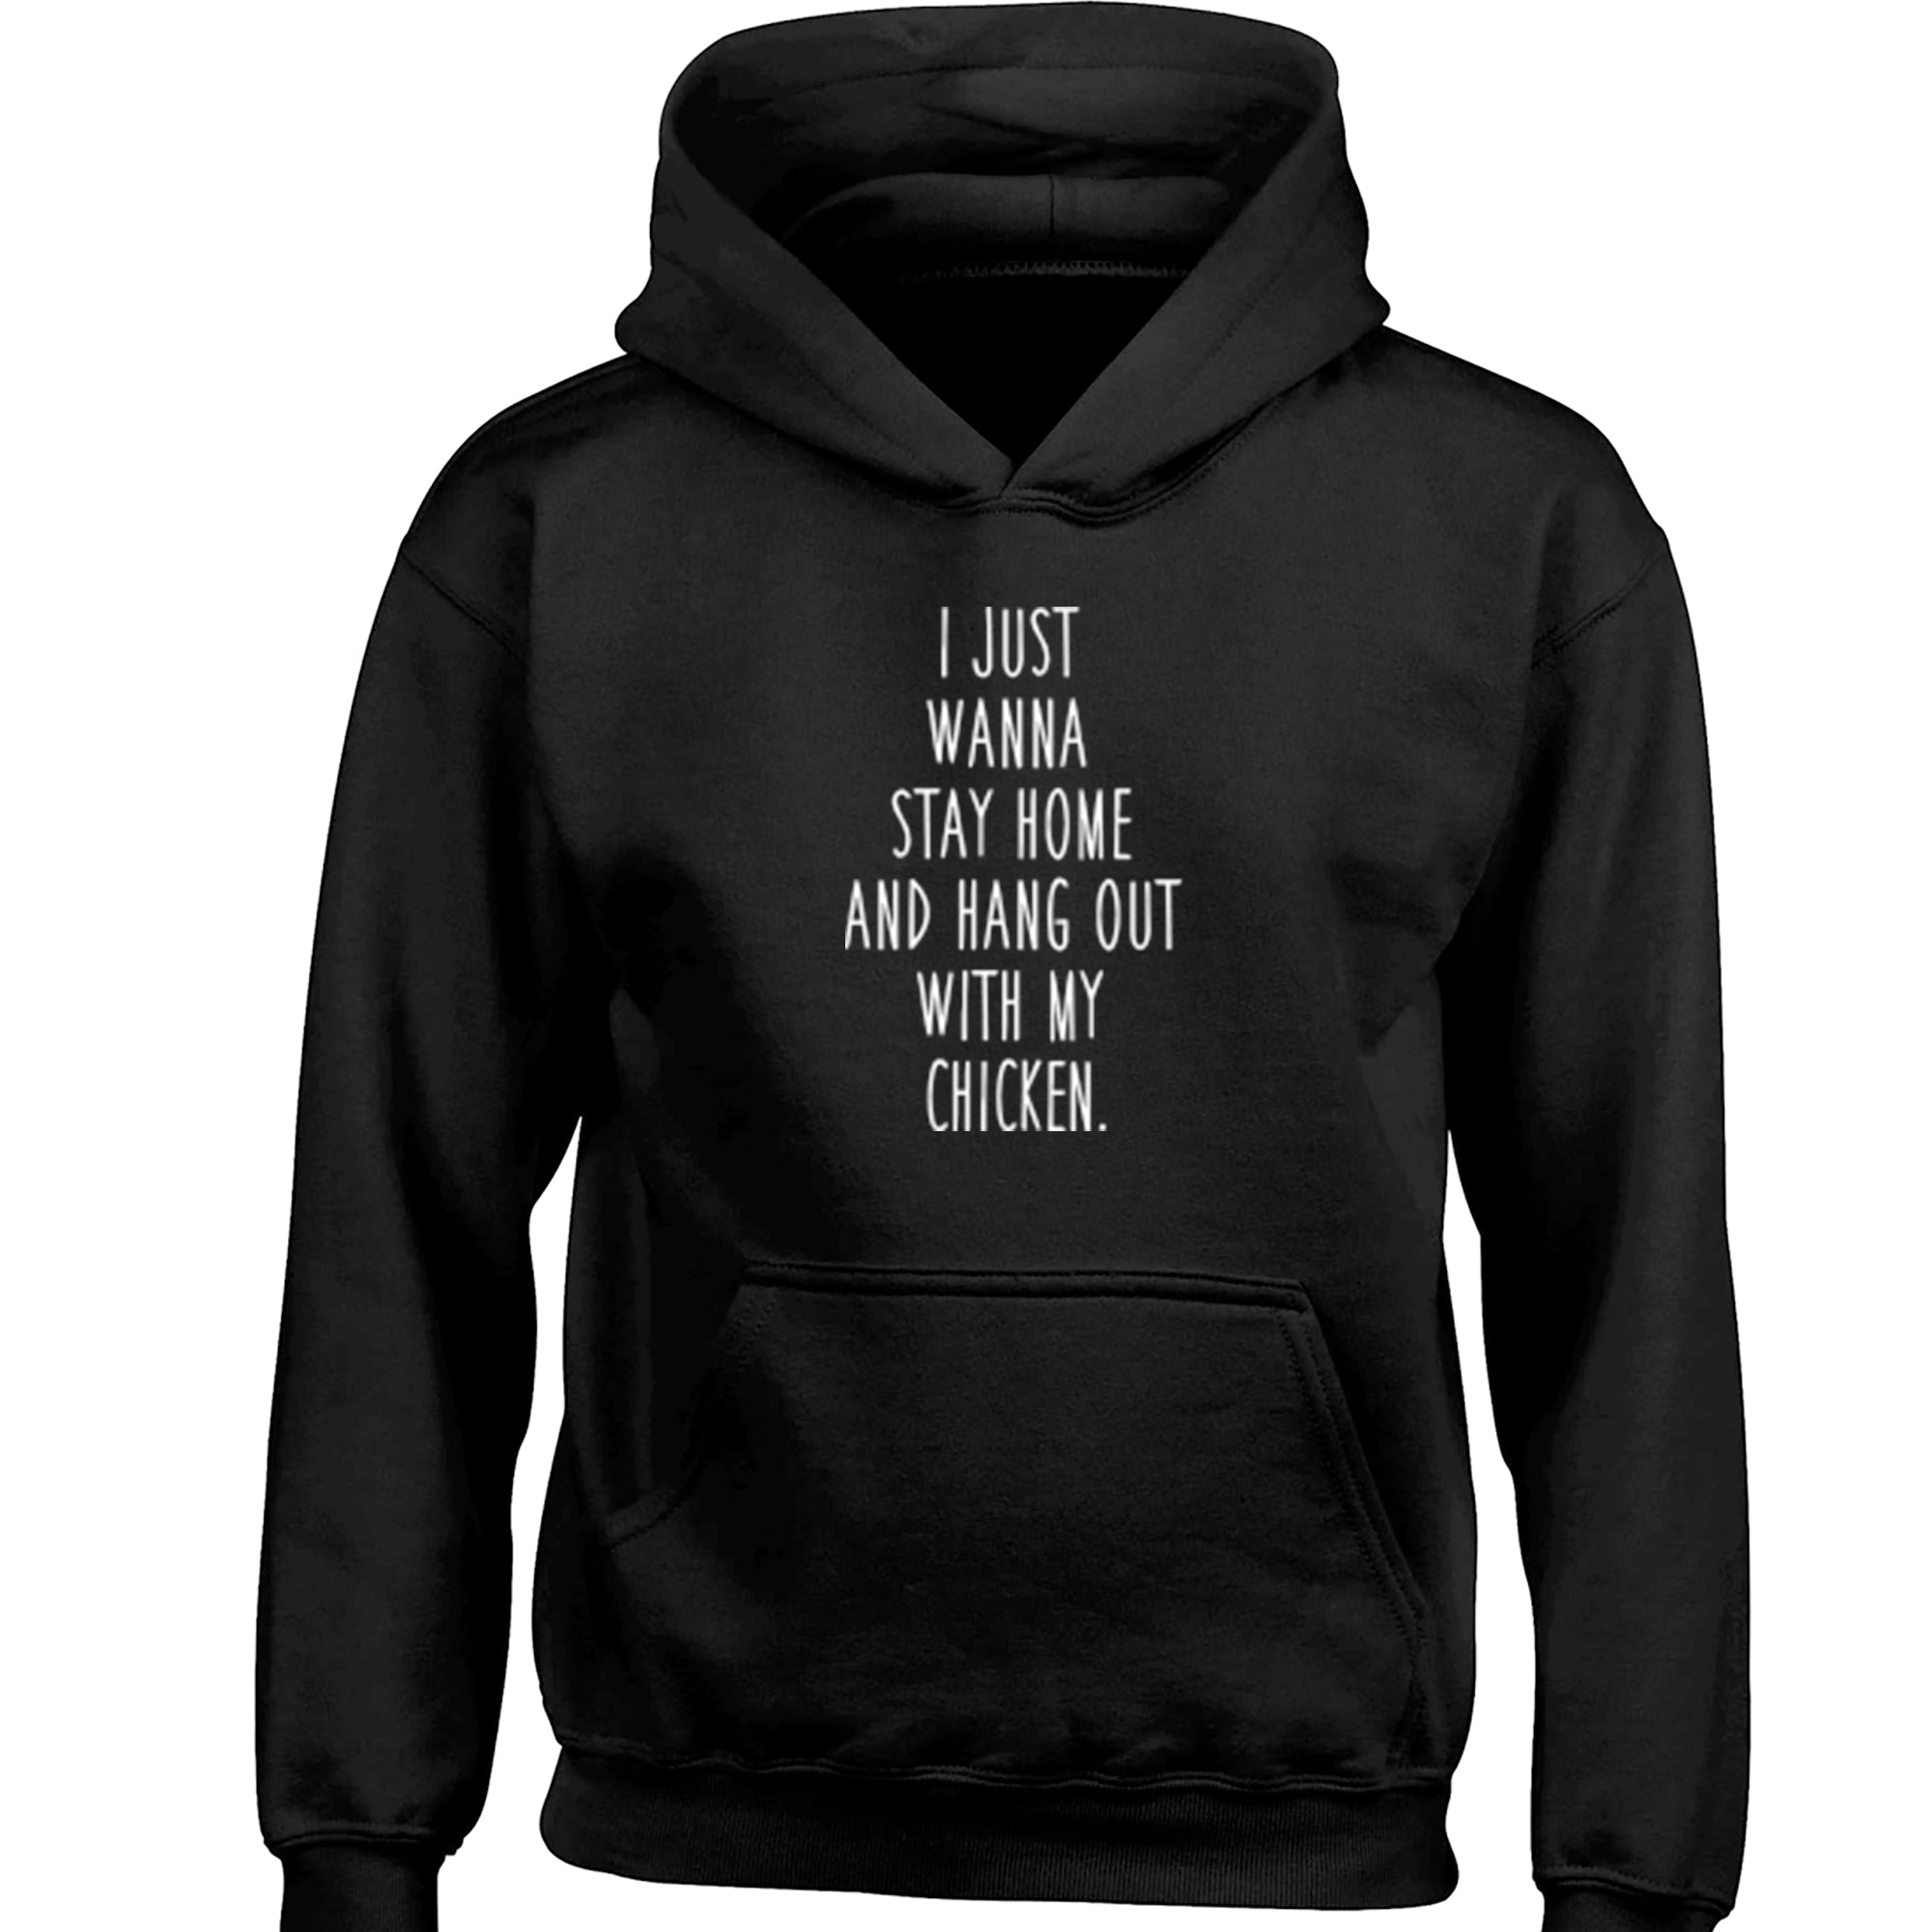 I Just Wanna Stay Home And Hang Out With My Chicken Childrens Ages 3/4-12/14 Printed Hoodie S0848 - Illustrated Identity Ltd.